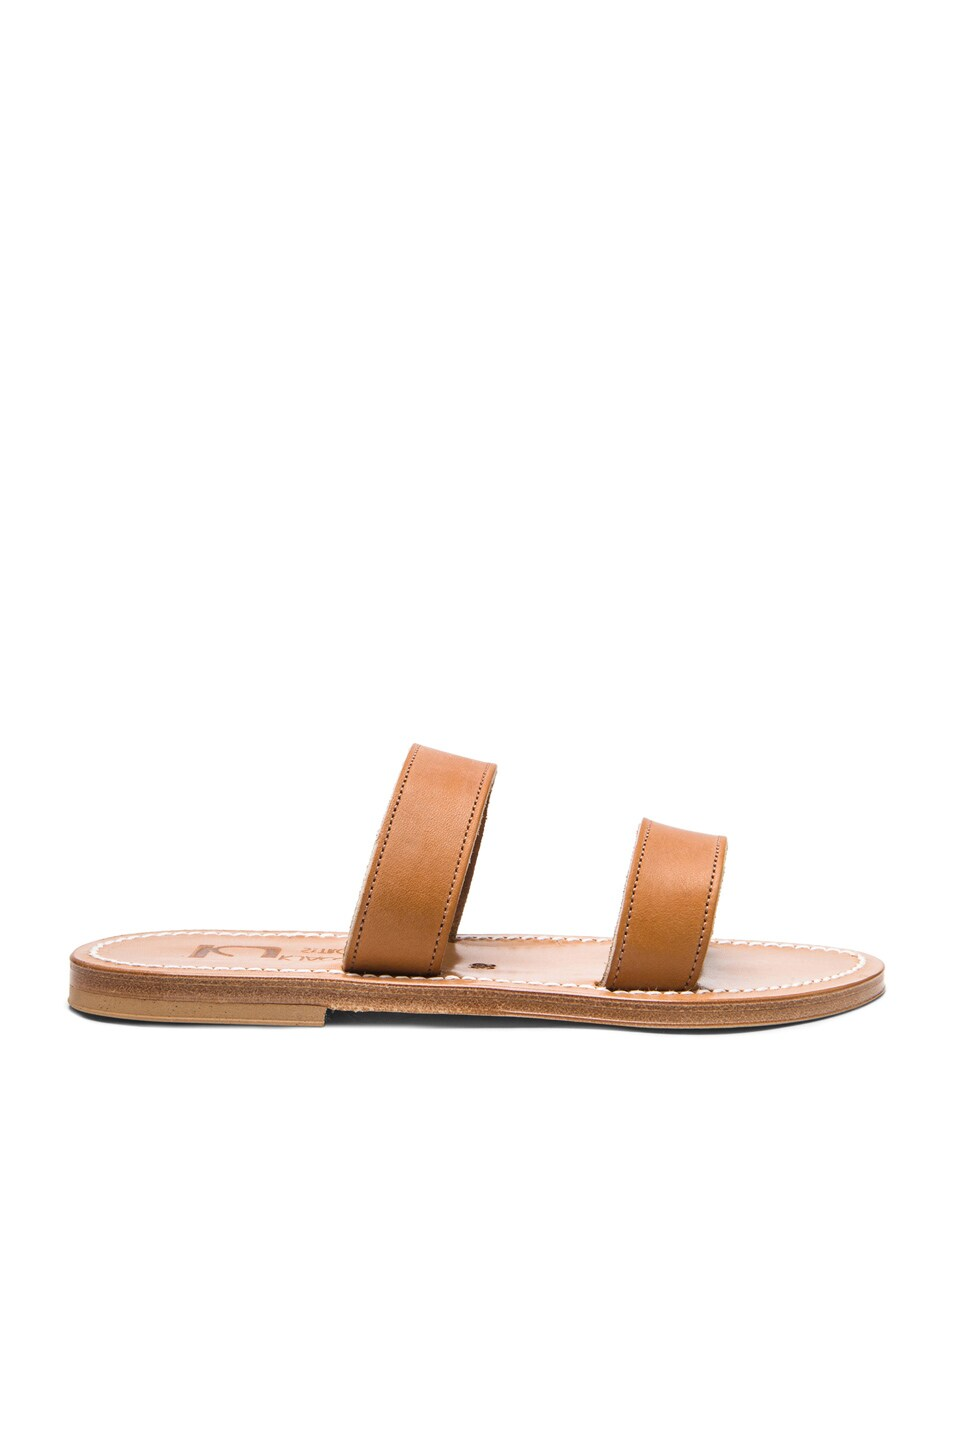 Image 1 of K Jacques Bagatel Leather Sandals in Natural